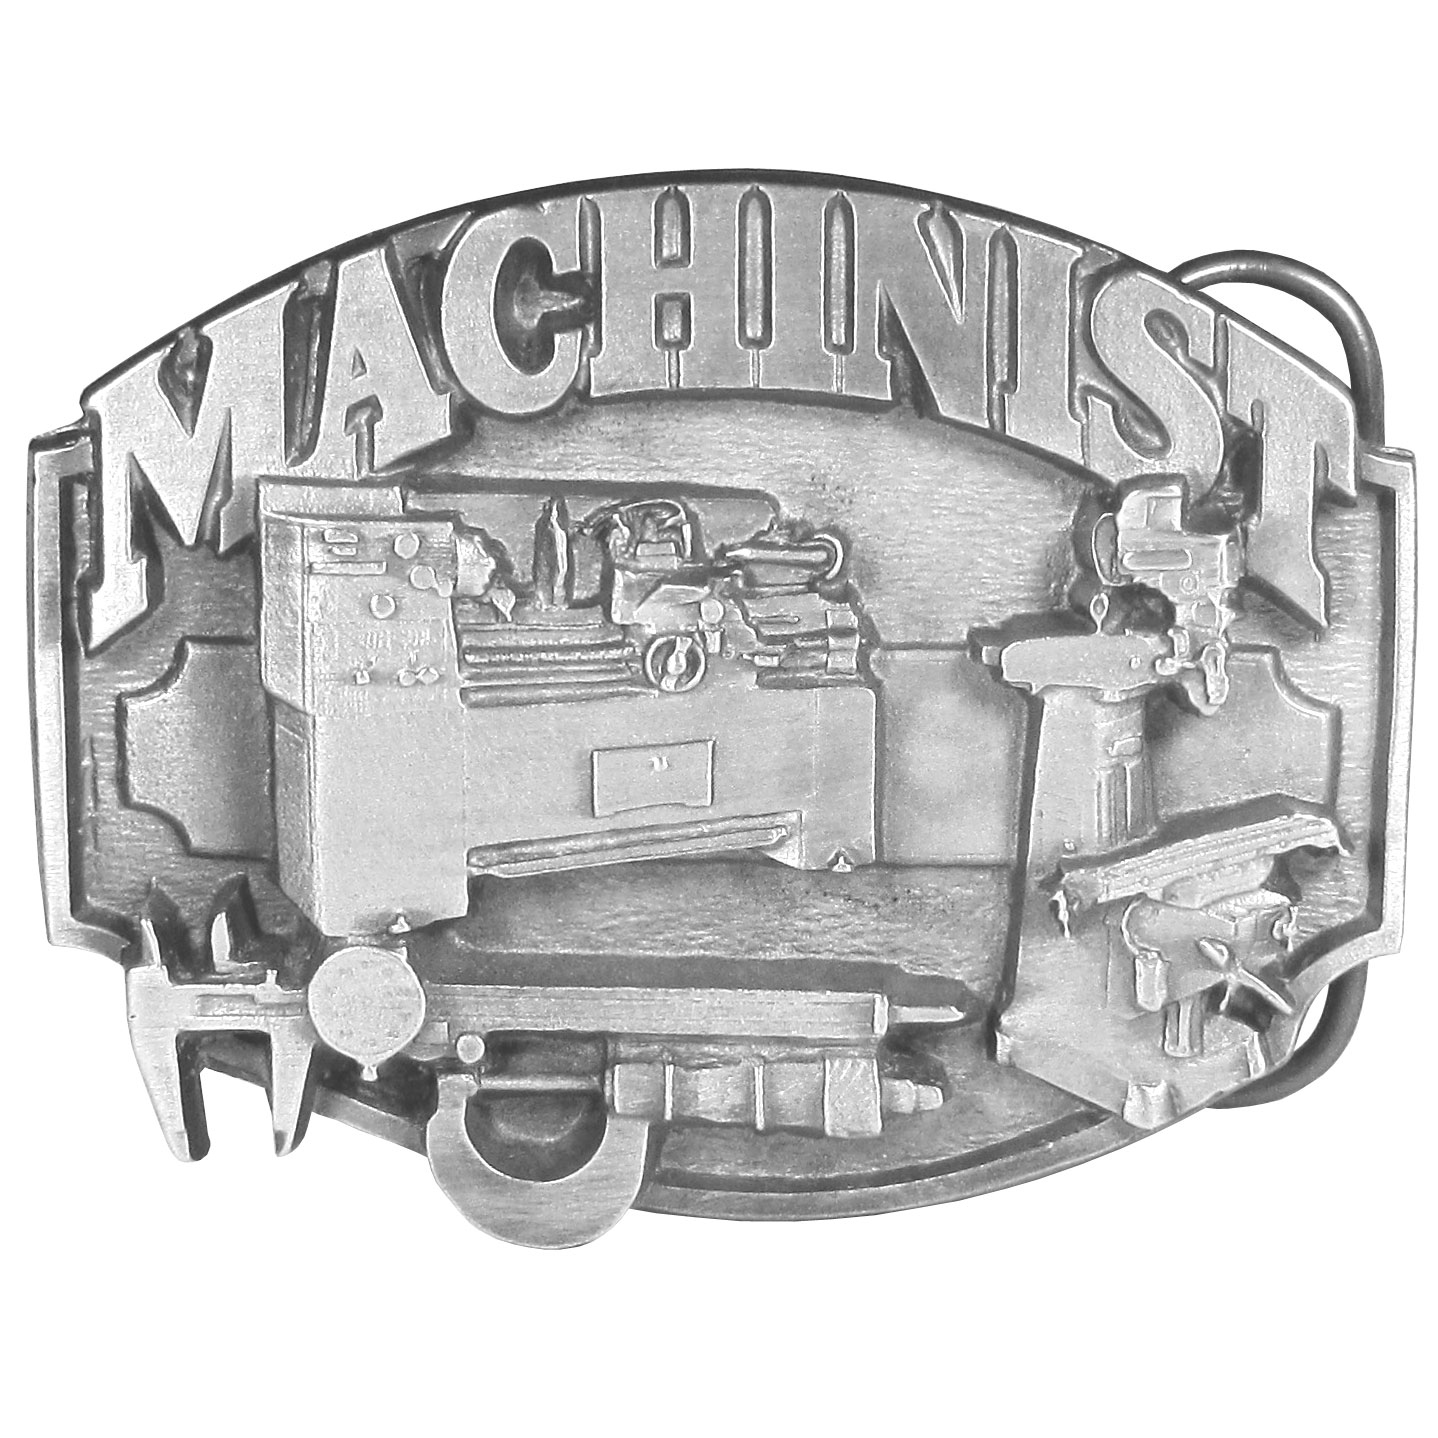 "Machinist Antiqued Belt Buckle - This belt buckle celebrates the machinist! ""Machinist"" is written in bold across the top with tools of the trade below. On the back are the words, Machinists are highly skilled people who play an important part in the manufacturing of almost all metal products. Modern society could not function without machinists and the work they do. This exquisitely carved buckle is made of fully cast metal with a standard bale that fits up to 2"" belts."